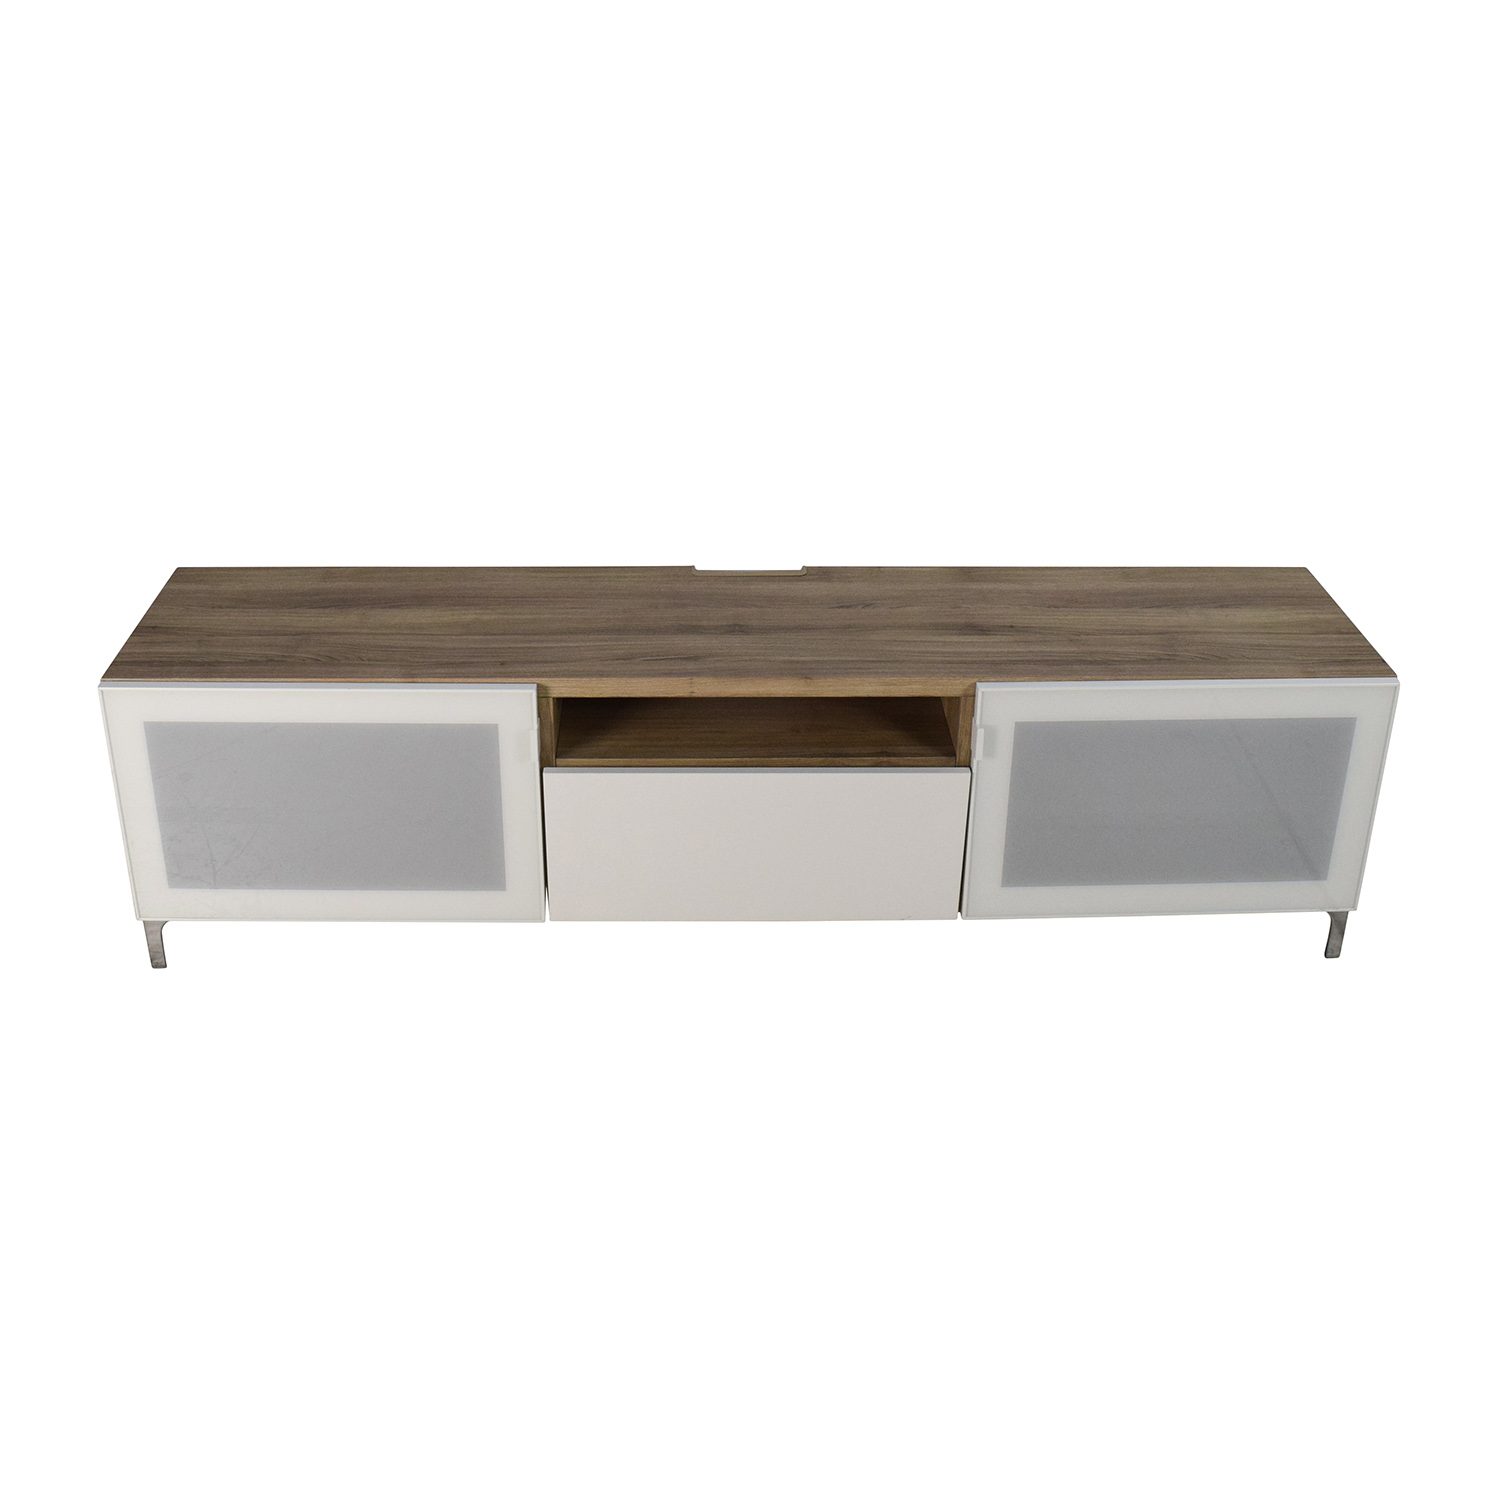 49% OFF IKEA IKEA Brown Wood Media Cabinet Storage